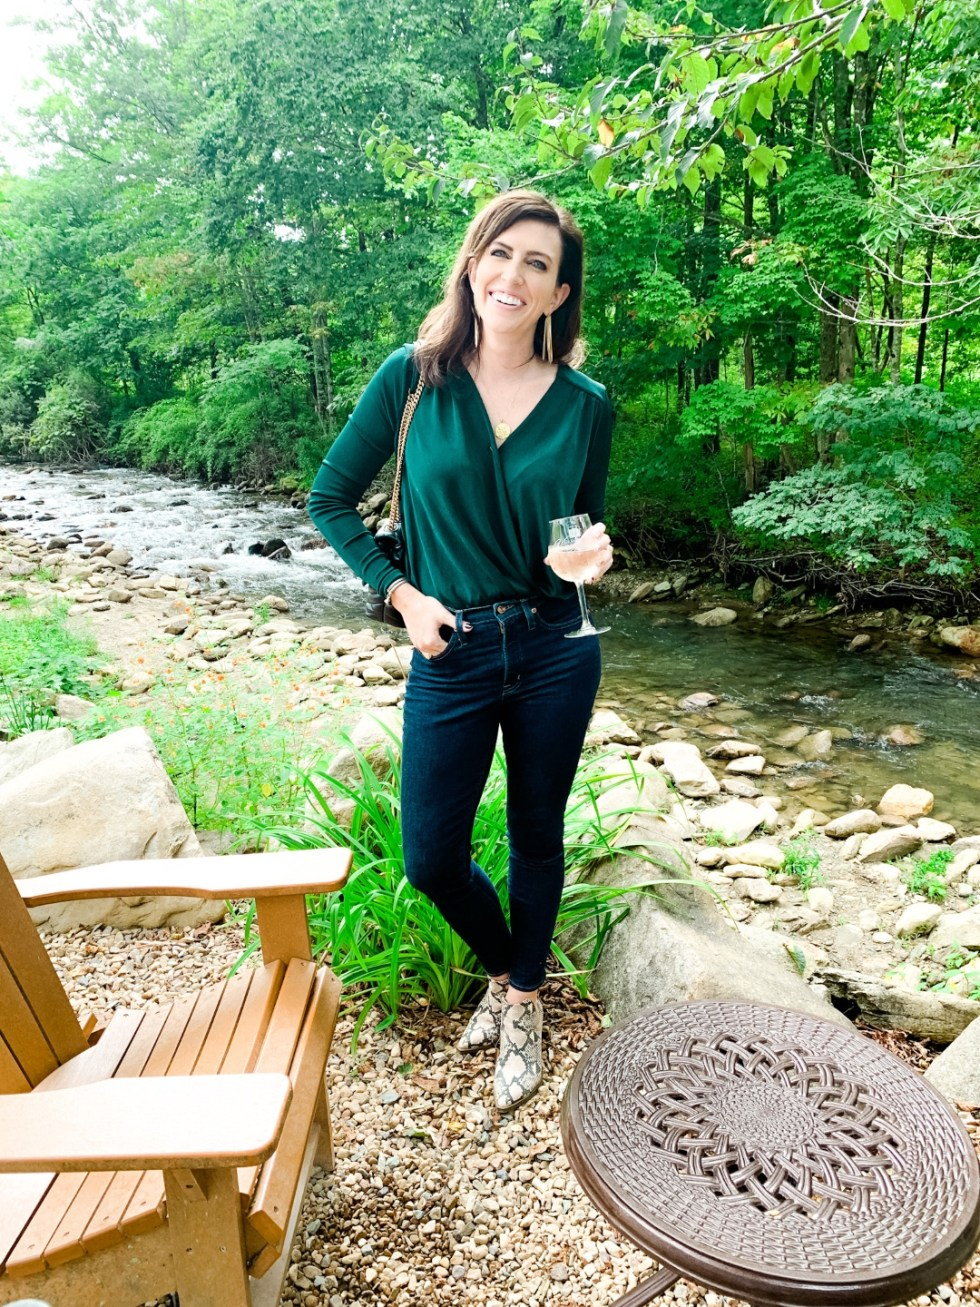 Most Popular Posts of 2020 - I'm Fixin' To - @imfixintoblog |Most Popular Posts by popular NC lifestyle blog, I'm Fixin' To: image of a woman standing by a river and and wearing a green long sleeve body suite, snake skin print ankle boots, jeans, and holding a glass of white wine.